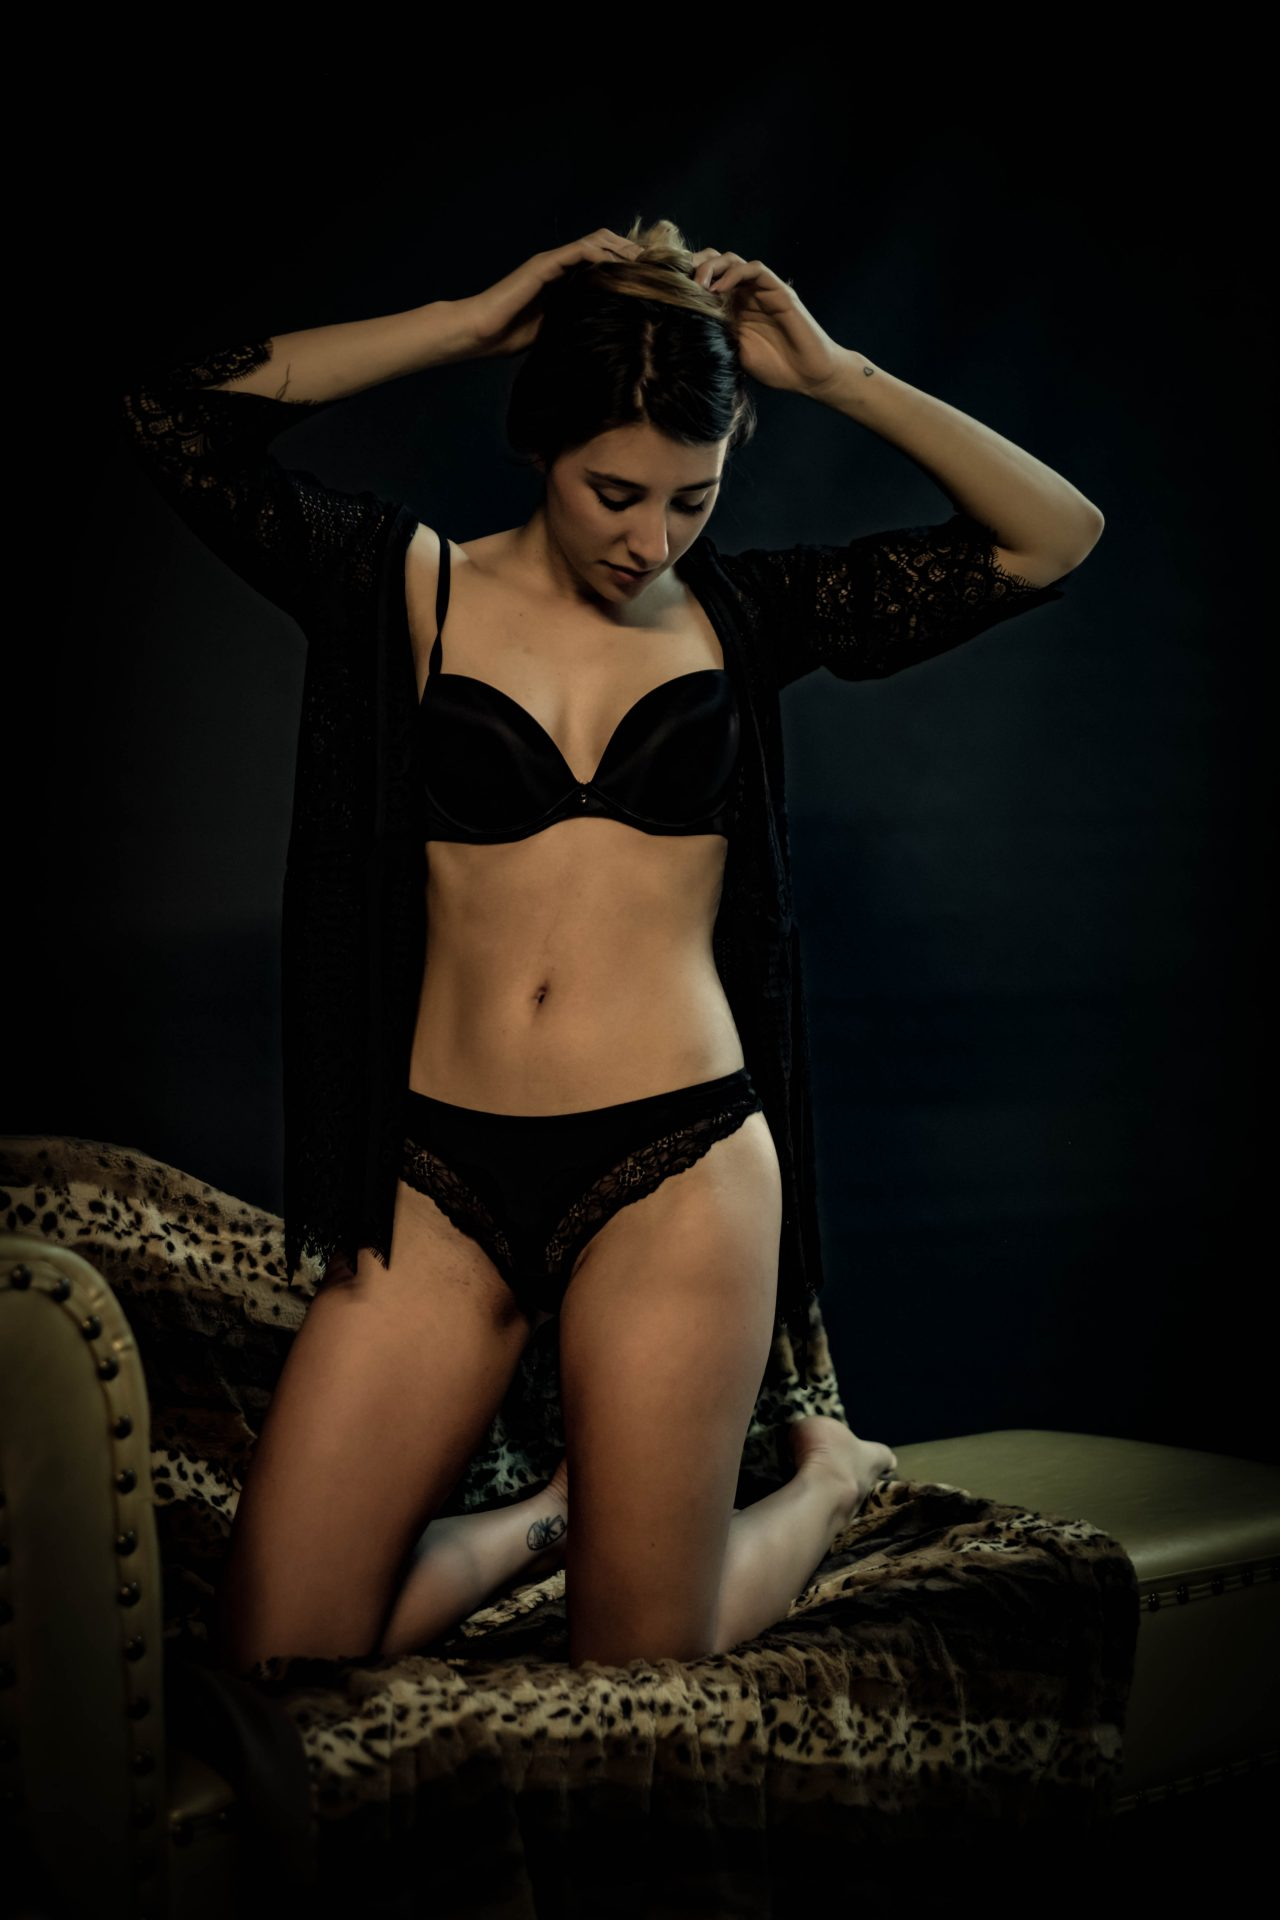 Female model posing in underwear for a boudoir session photo by Jo Kassis